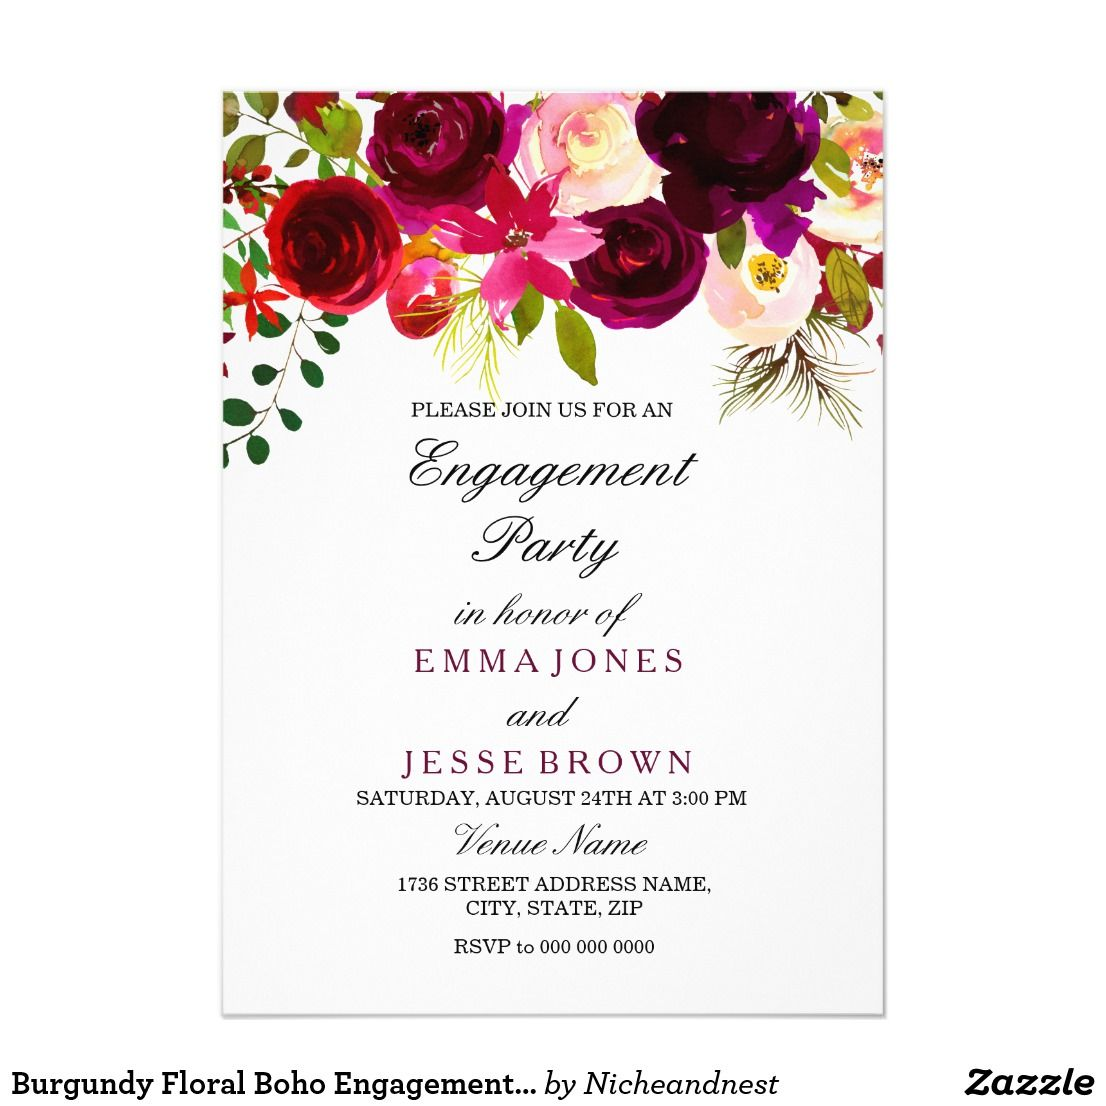 Burgundy Floral Boho Engagement Party Invitation | Engagement ...